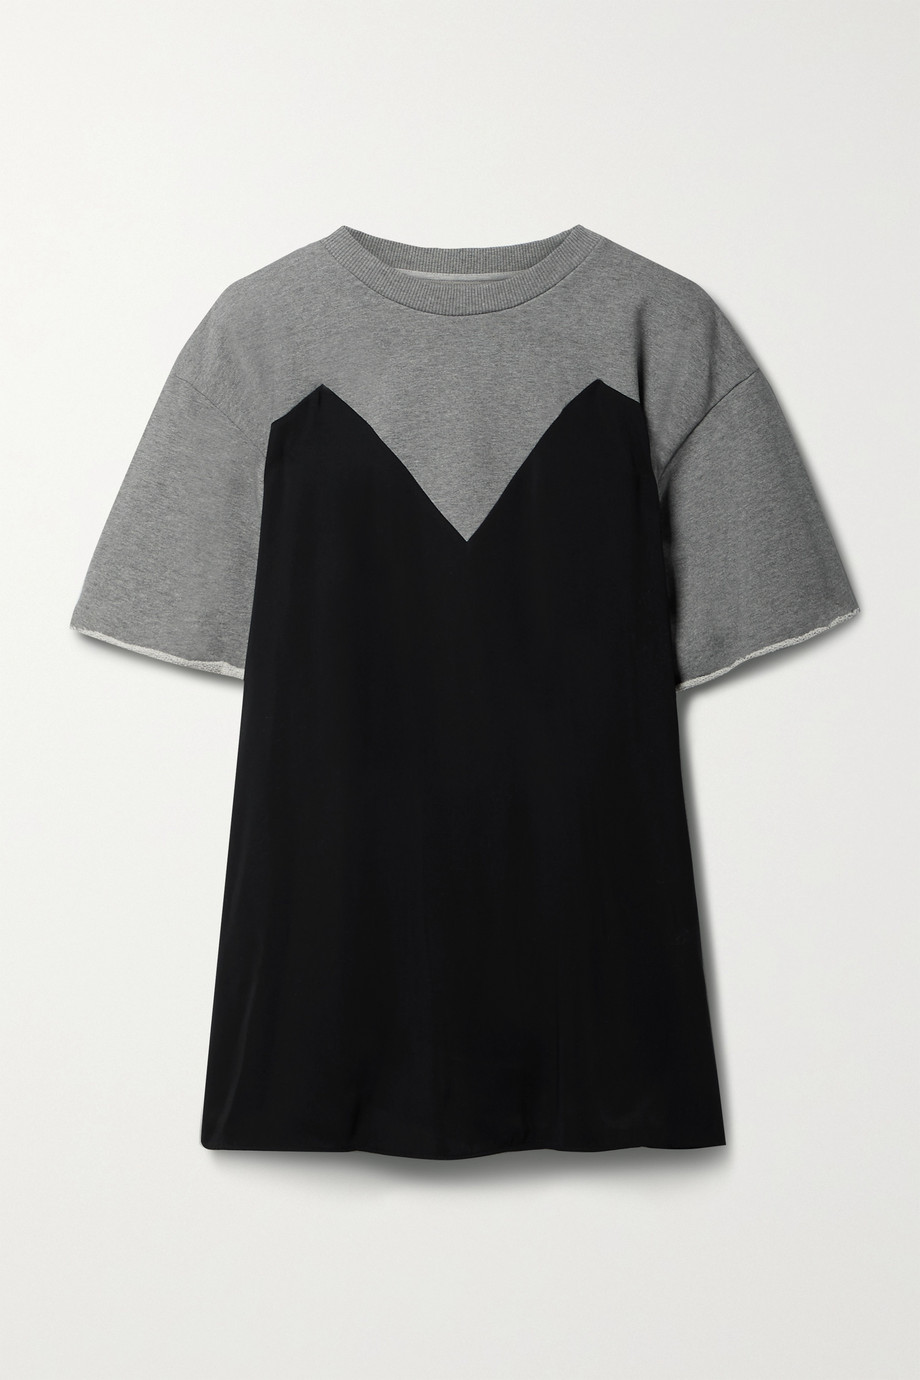 MM6 Maison Margiela Trompe-l'œil belted jersey and mélange French cotton-terry top